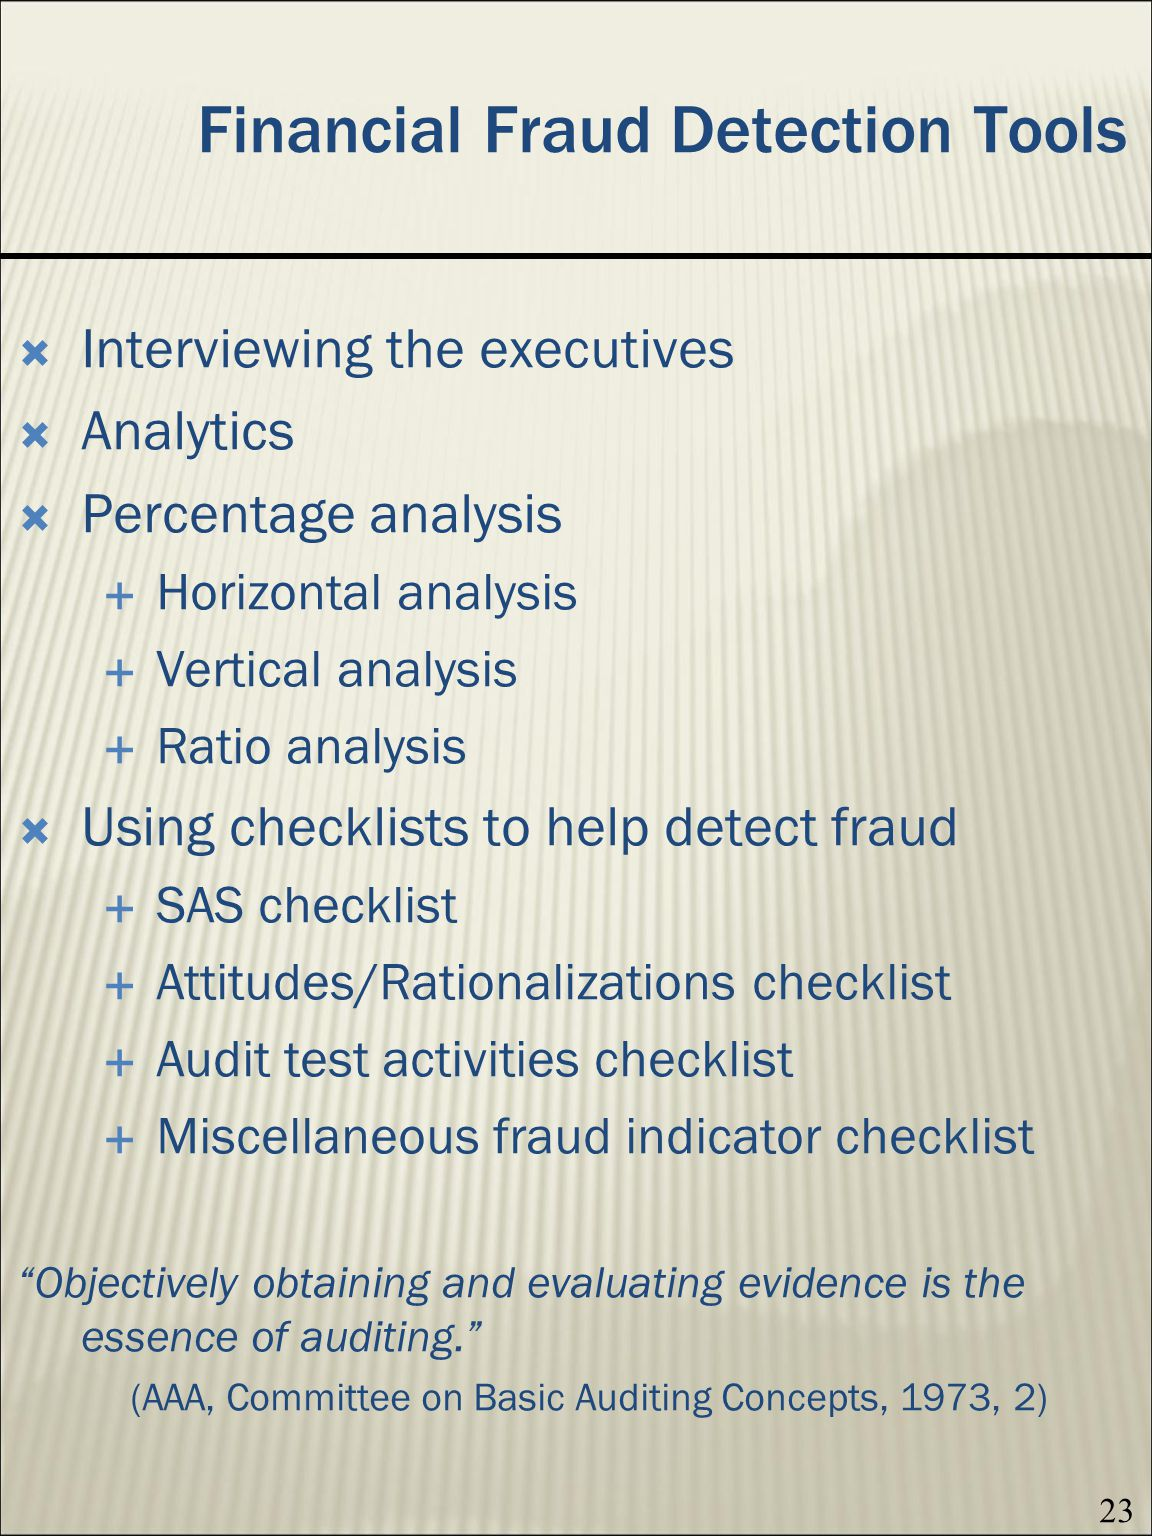 23 Financial Fraud Detection Tools Interviewing the executives Analytics Percentage analysis Horizontal analysis Vertical analysis Ratio analysis Using checklists to help detect fraud SAS checklist Attitudes/Rationalizations checklist Audit test activities checklist Miscellaneous fraud indicator checklist Objectively obtaining and evaluating evidence is the essence of auditing.